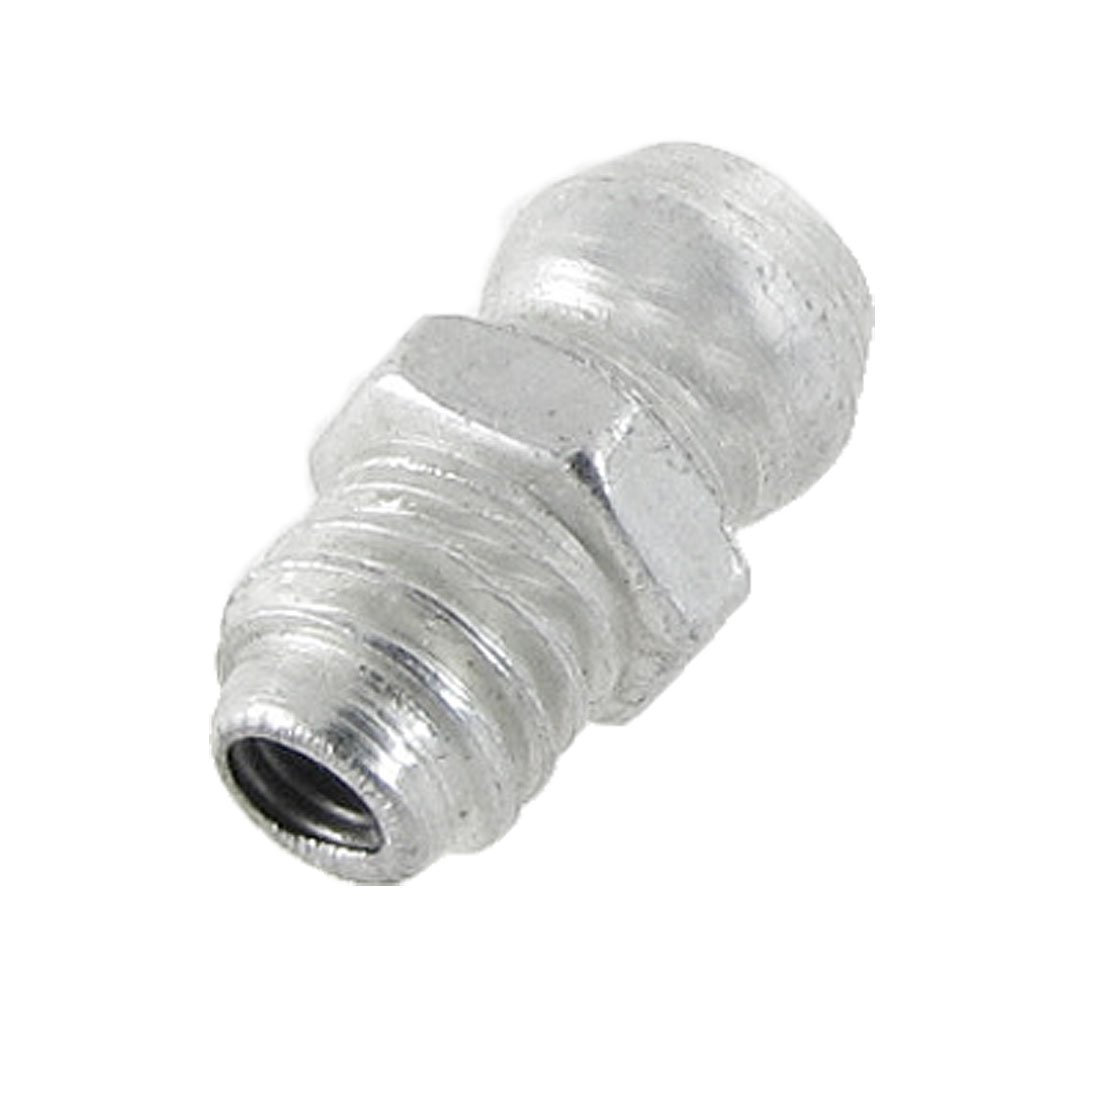 sourcingmap 6mm M6 Male Thread Straight Hydraulic Grease Nipple Fitting a11121000ux0036